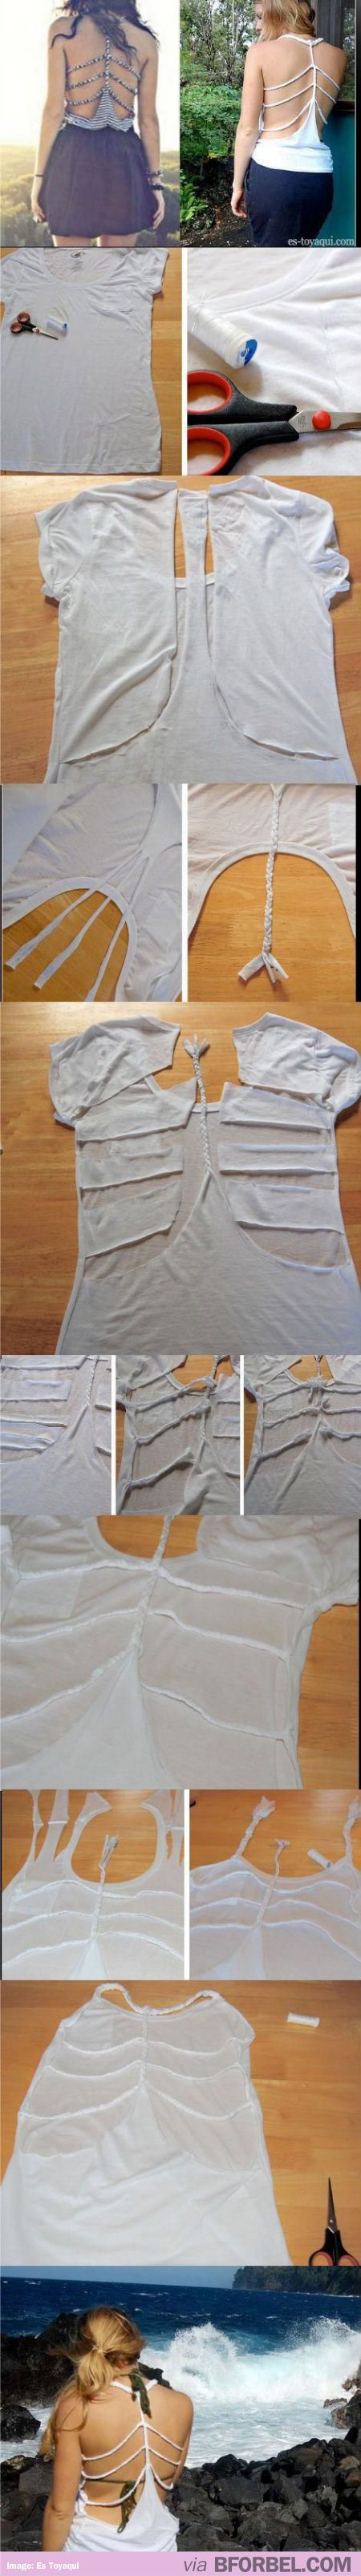 DIY: Spine, rib cagey tank from a t-shirt. At least I think that's what they're called.